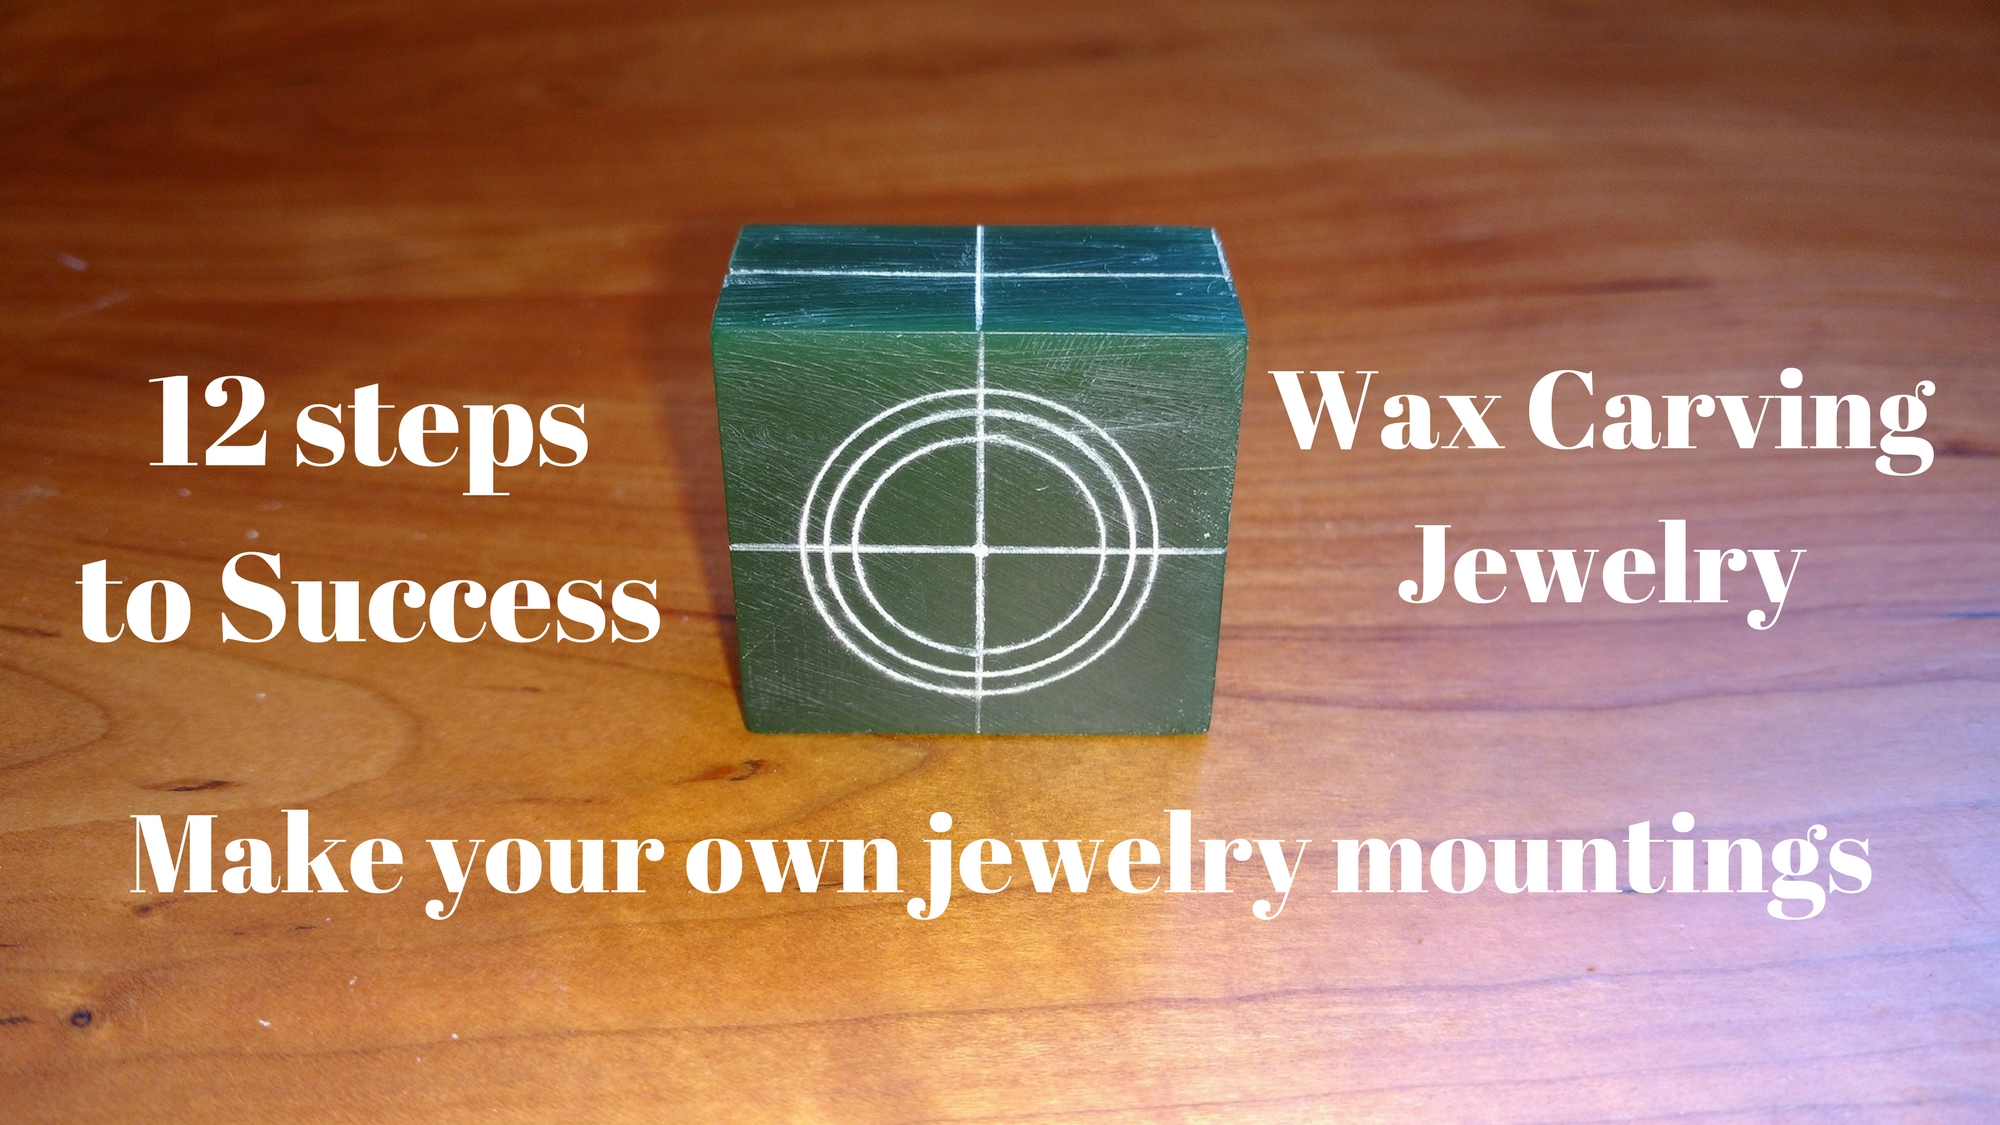 Wax carving -Lost wax casting